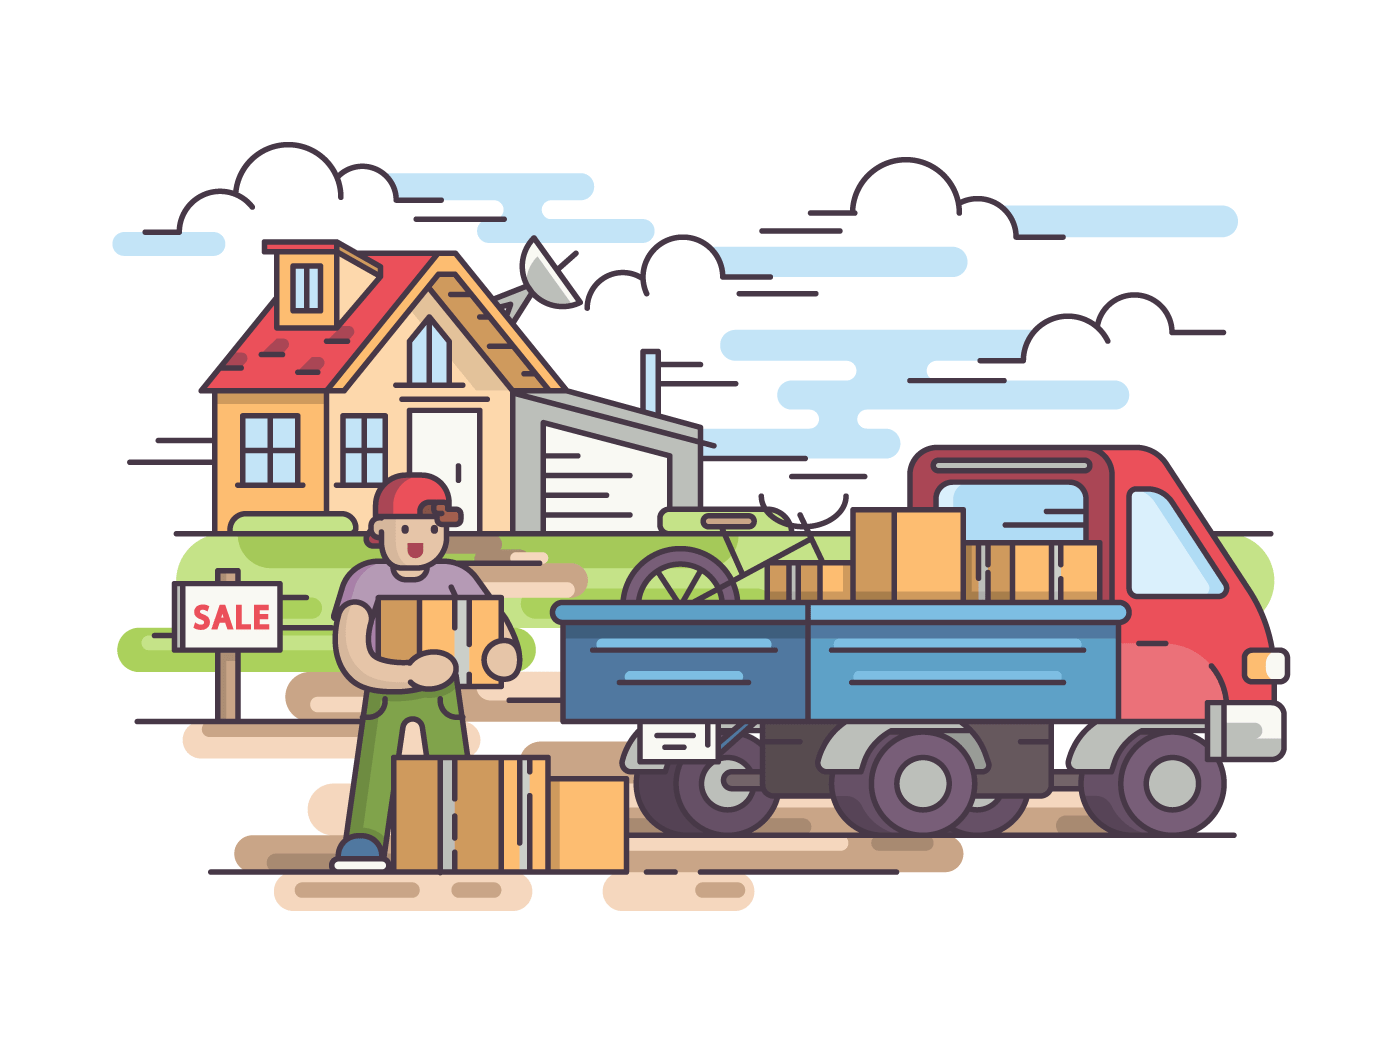 Sale of house. Guy leaves home and collects things in car. Vector illustration